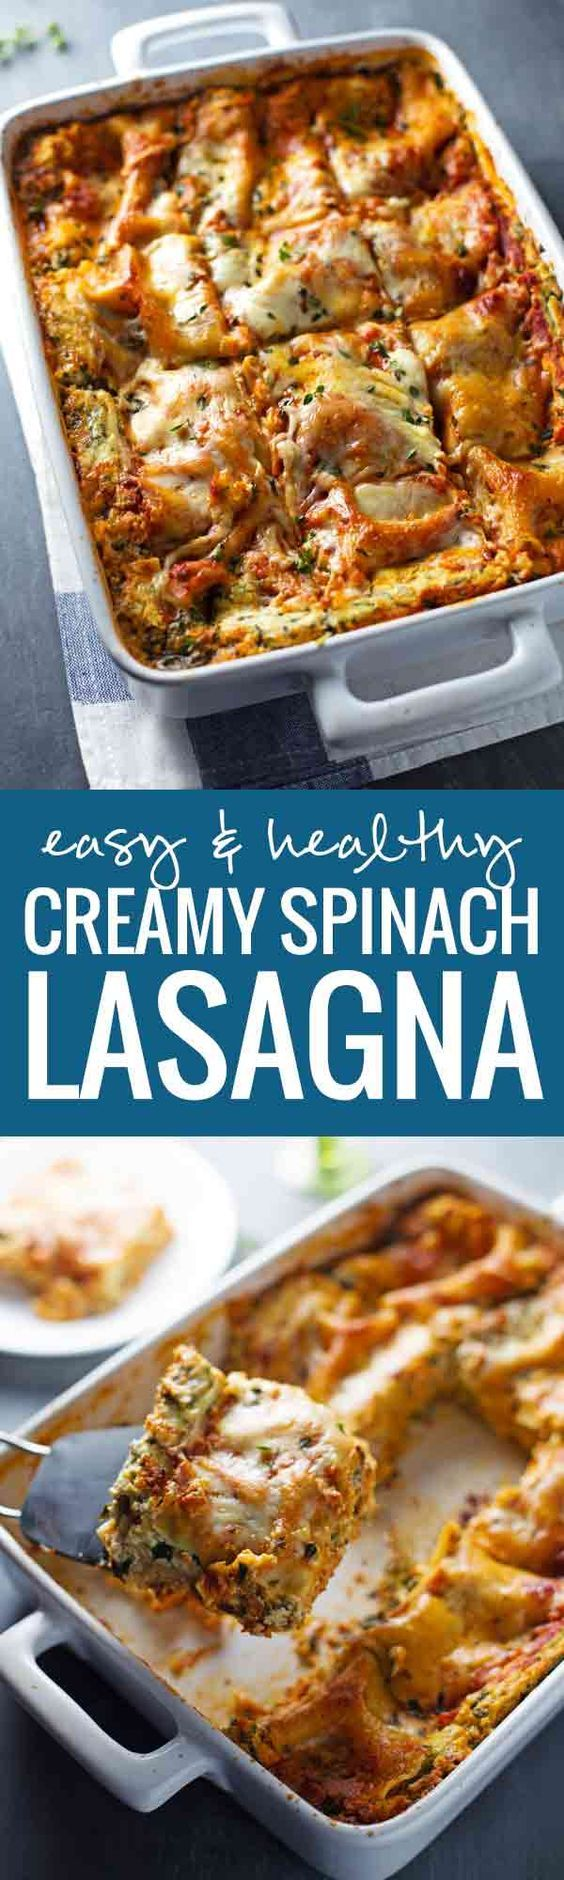 Skinny Spinach Lasagna - thick layers of sauce, noodles, ricotta, spinach, and Mozzarella - 250 calories. | pinchofyum.com: